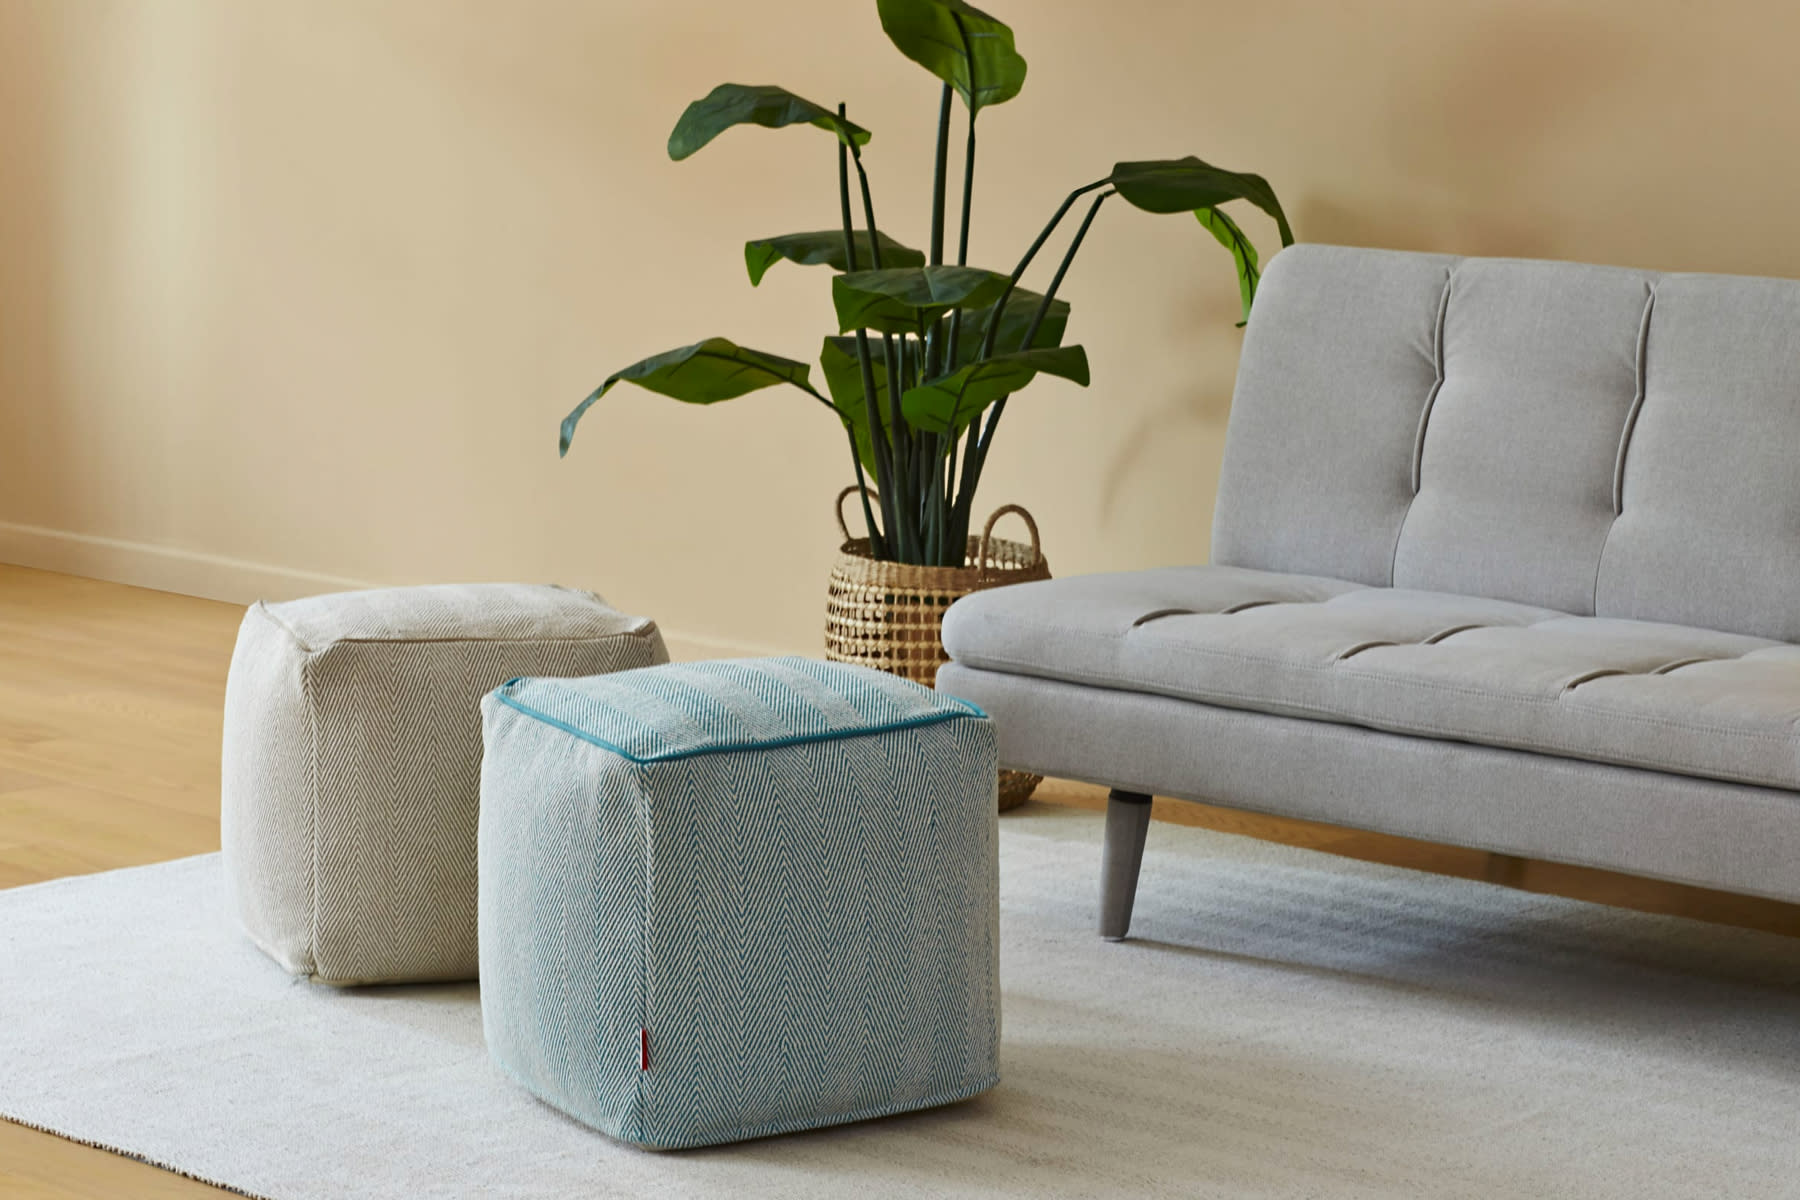 fabric poufs in living room next to fabric sofa and potted plant